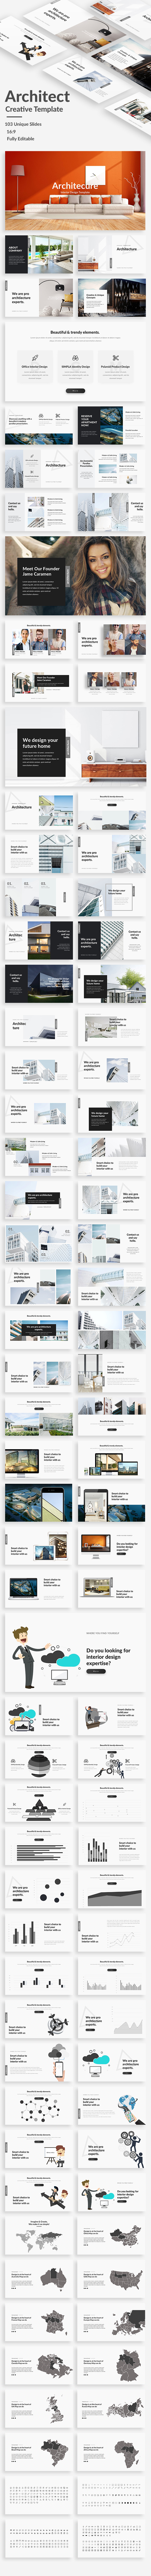 Architecture and Interior Design Powerpoint Template - Creative PowerPoint Templates